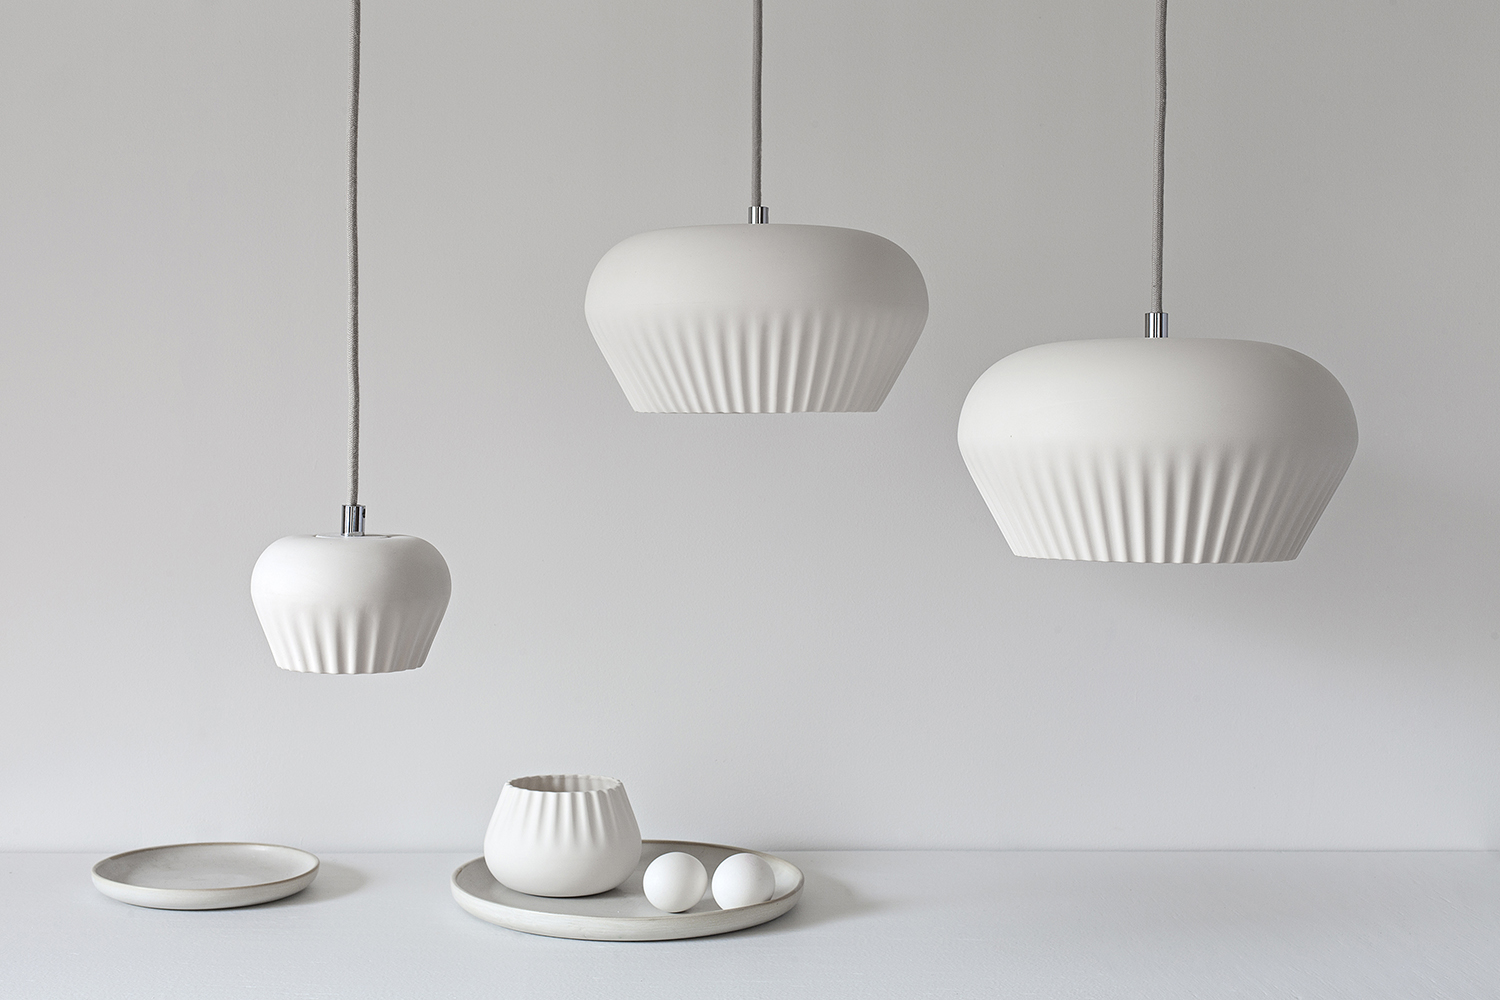 Stoft Studio's 'Shell' pendant lights in porcelain.